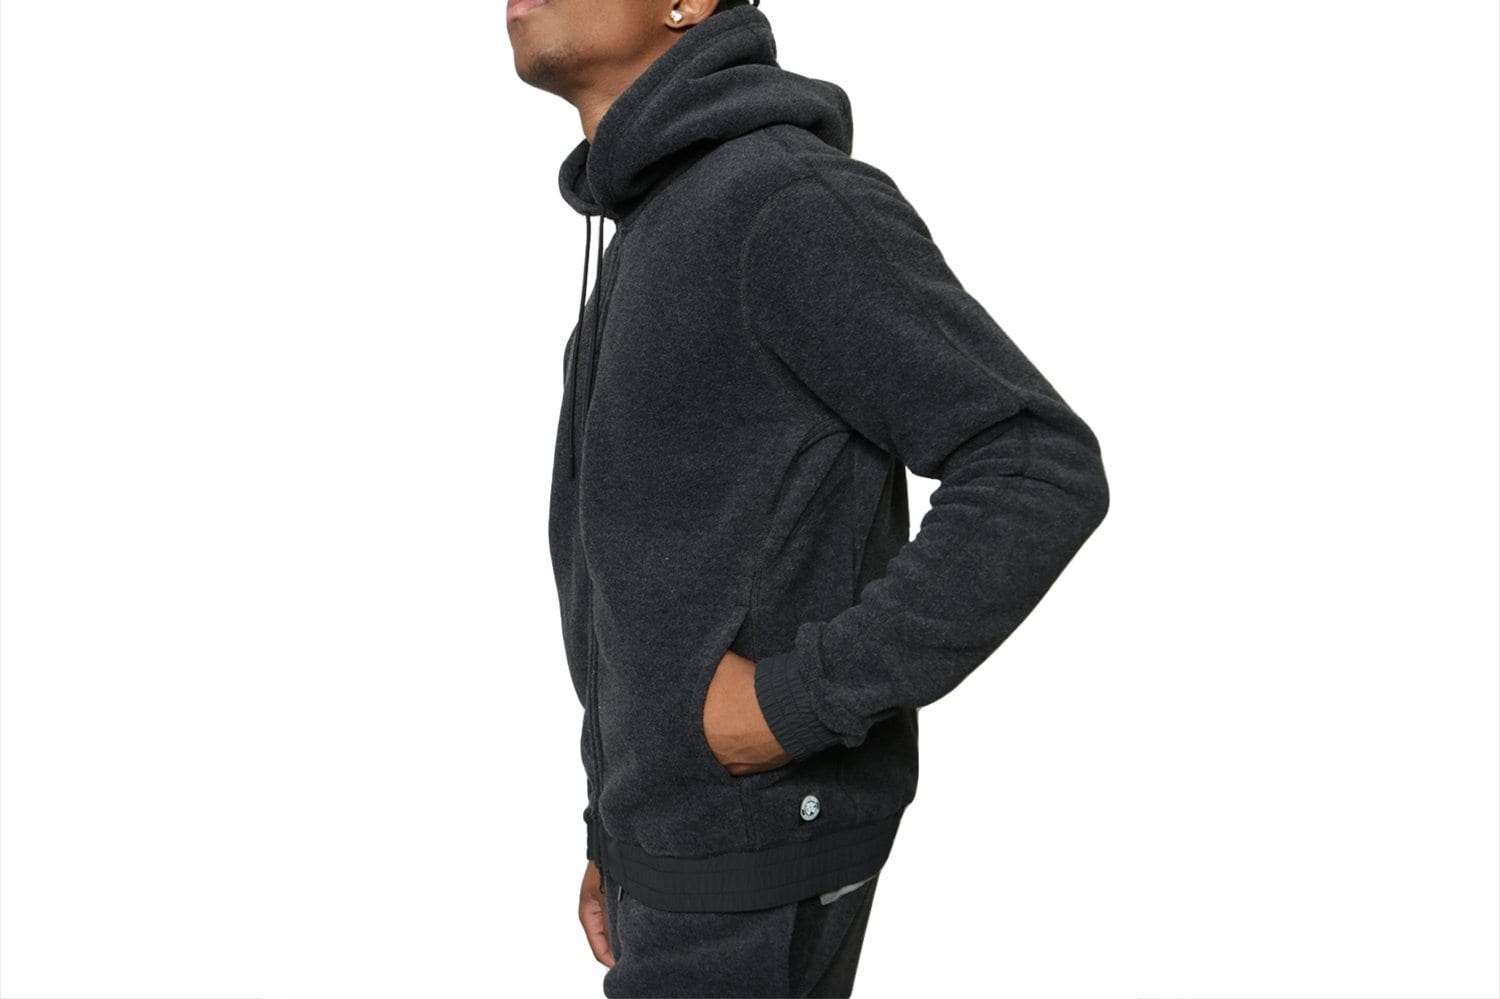 KNIT POLARTEC FLEECE FULL ZIP HOODIE - RC-4142 MENS SOFTGOODS REIGNING CHAMP